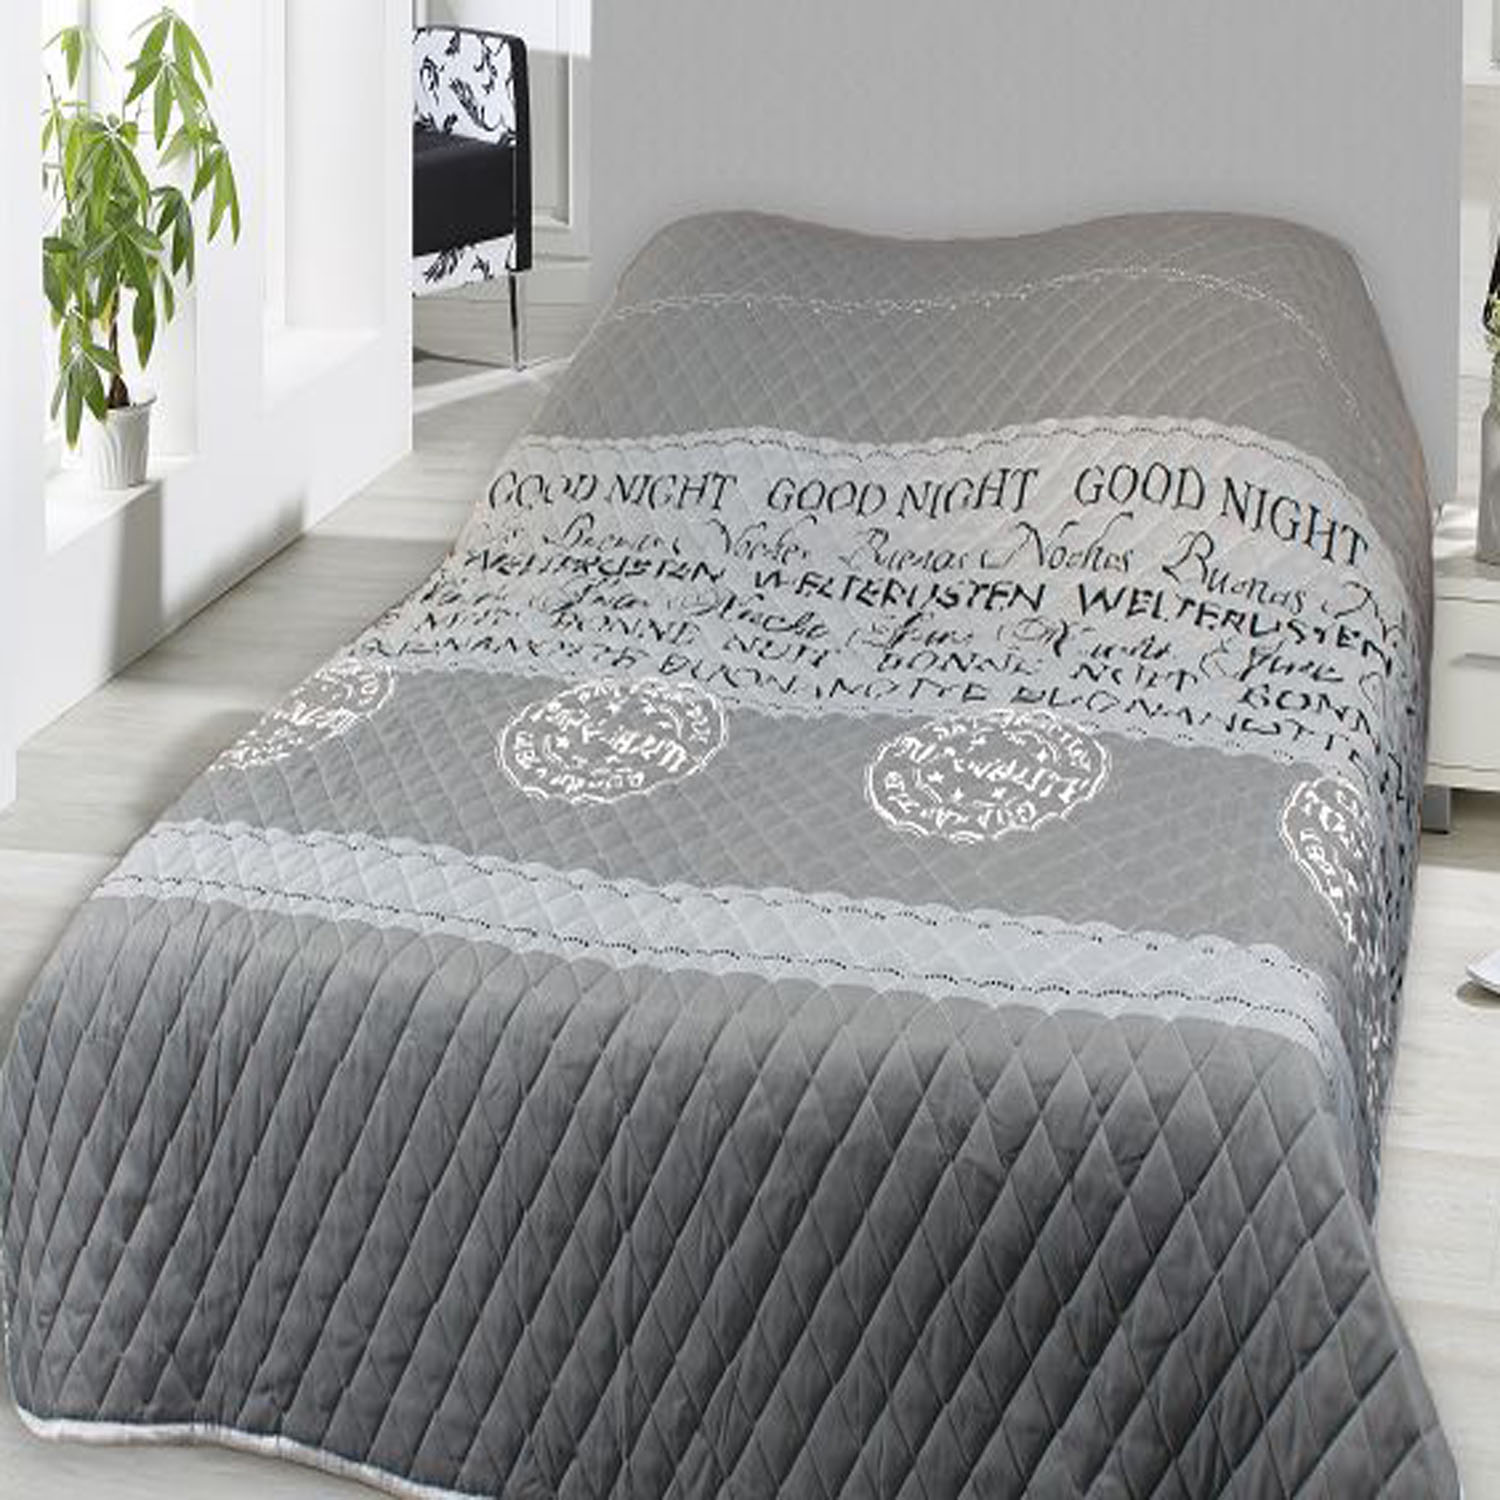 tagesdecke bett berwurf 240x220cm good night heimtextilien tagesdecken. Black Bedroom Furniture Sets. Home Design Ideas